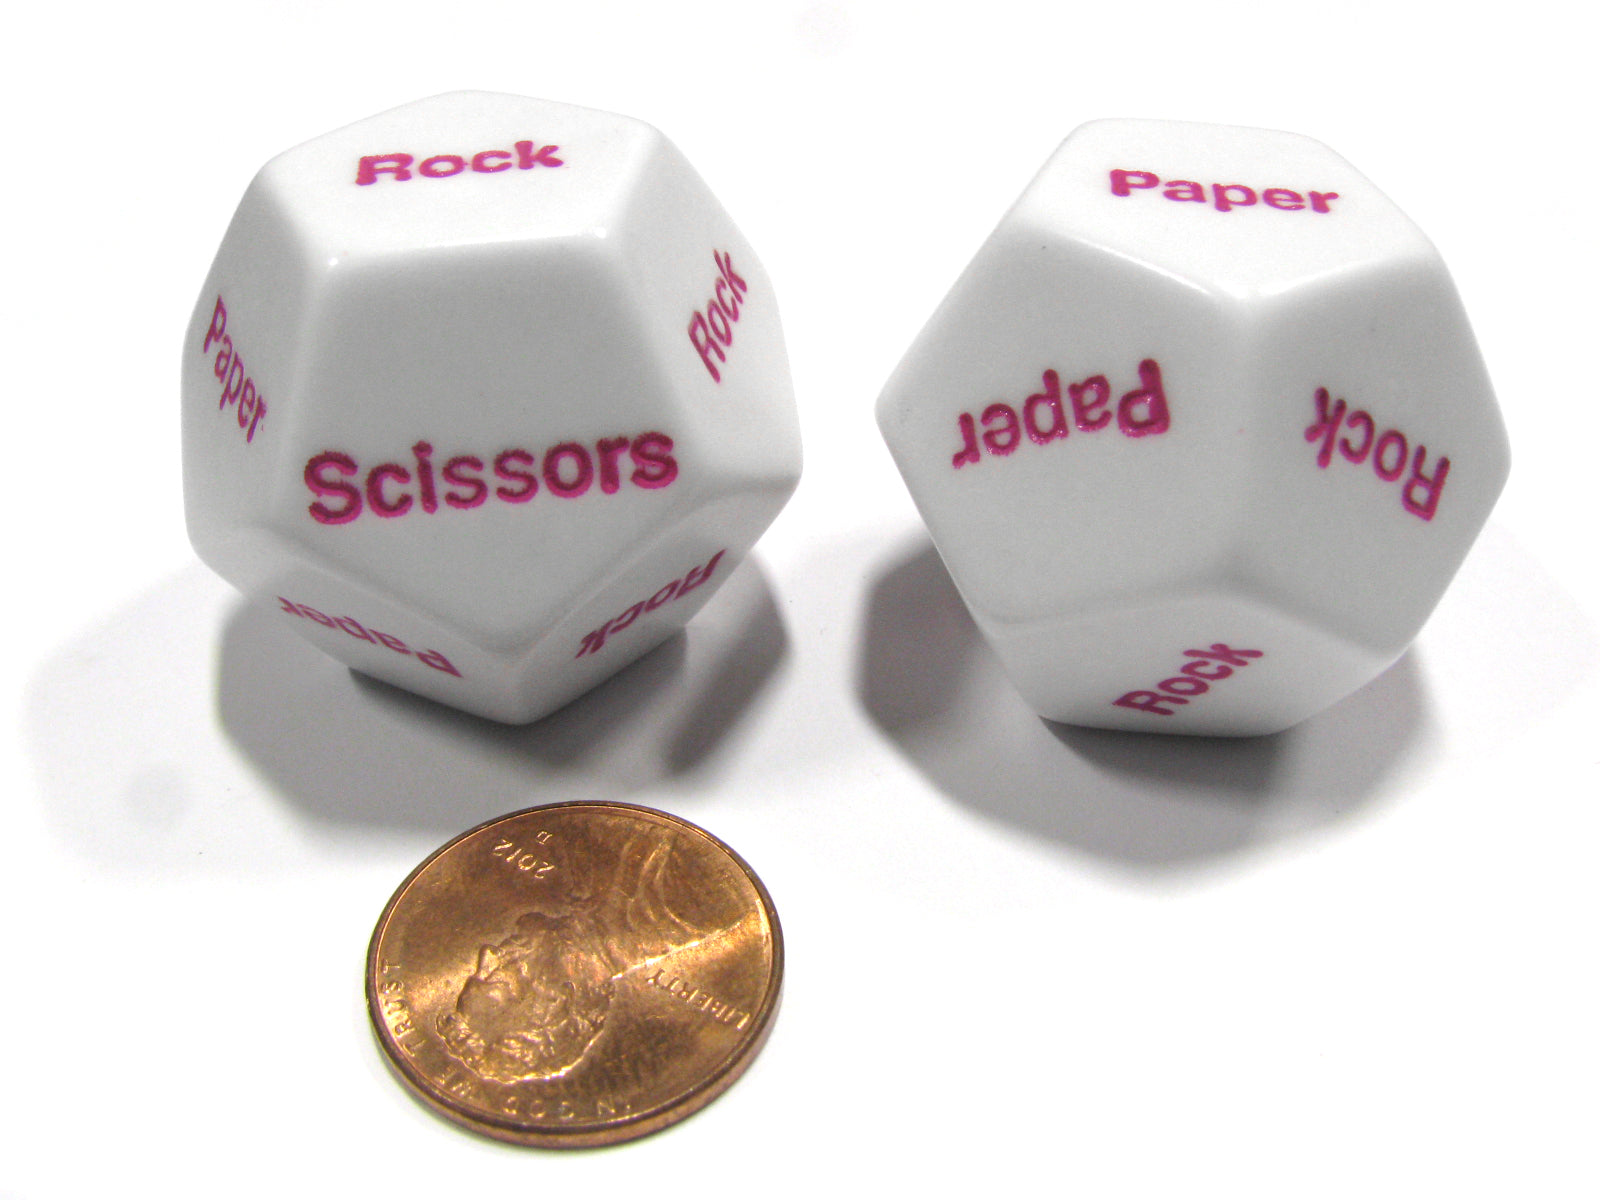 Set of 2 D12 12-Sided Rock, Paper, Scissors Game Dice - White with Pink Letters